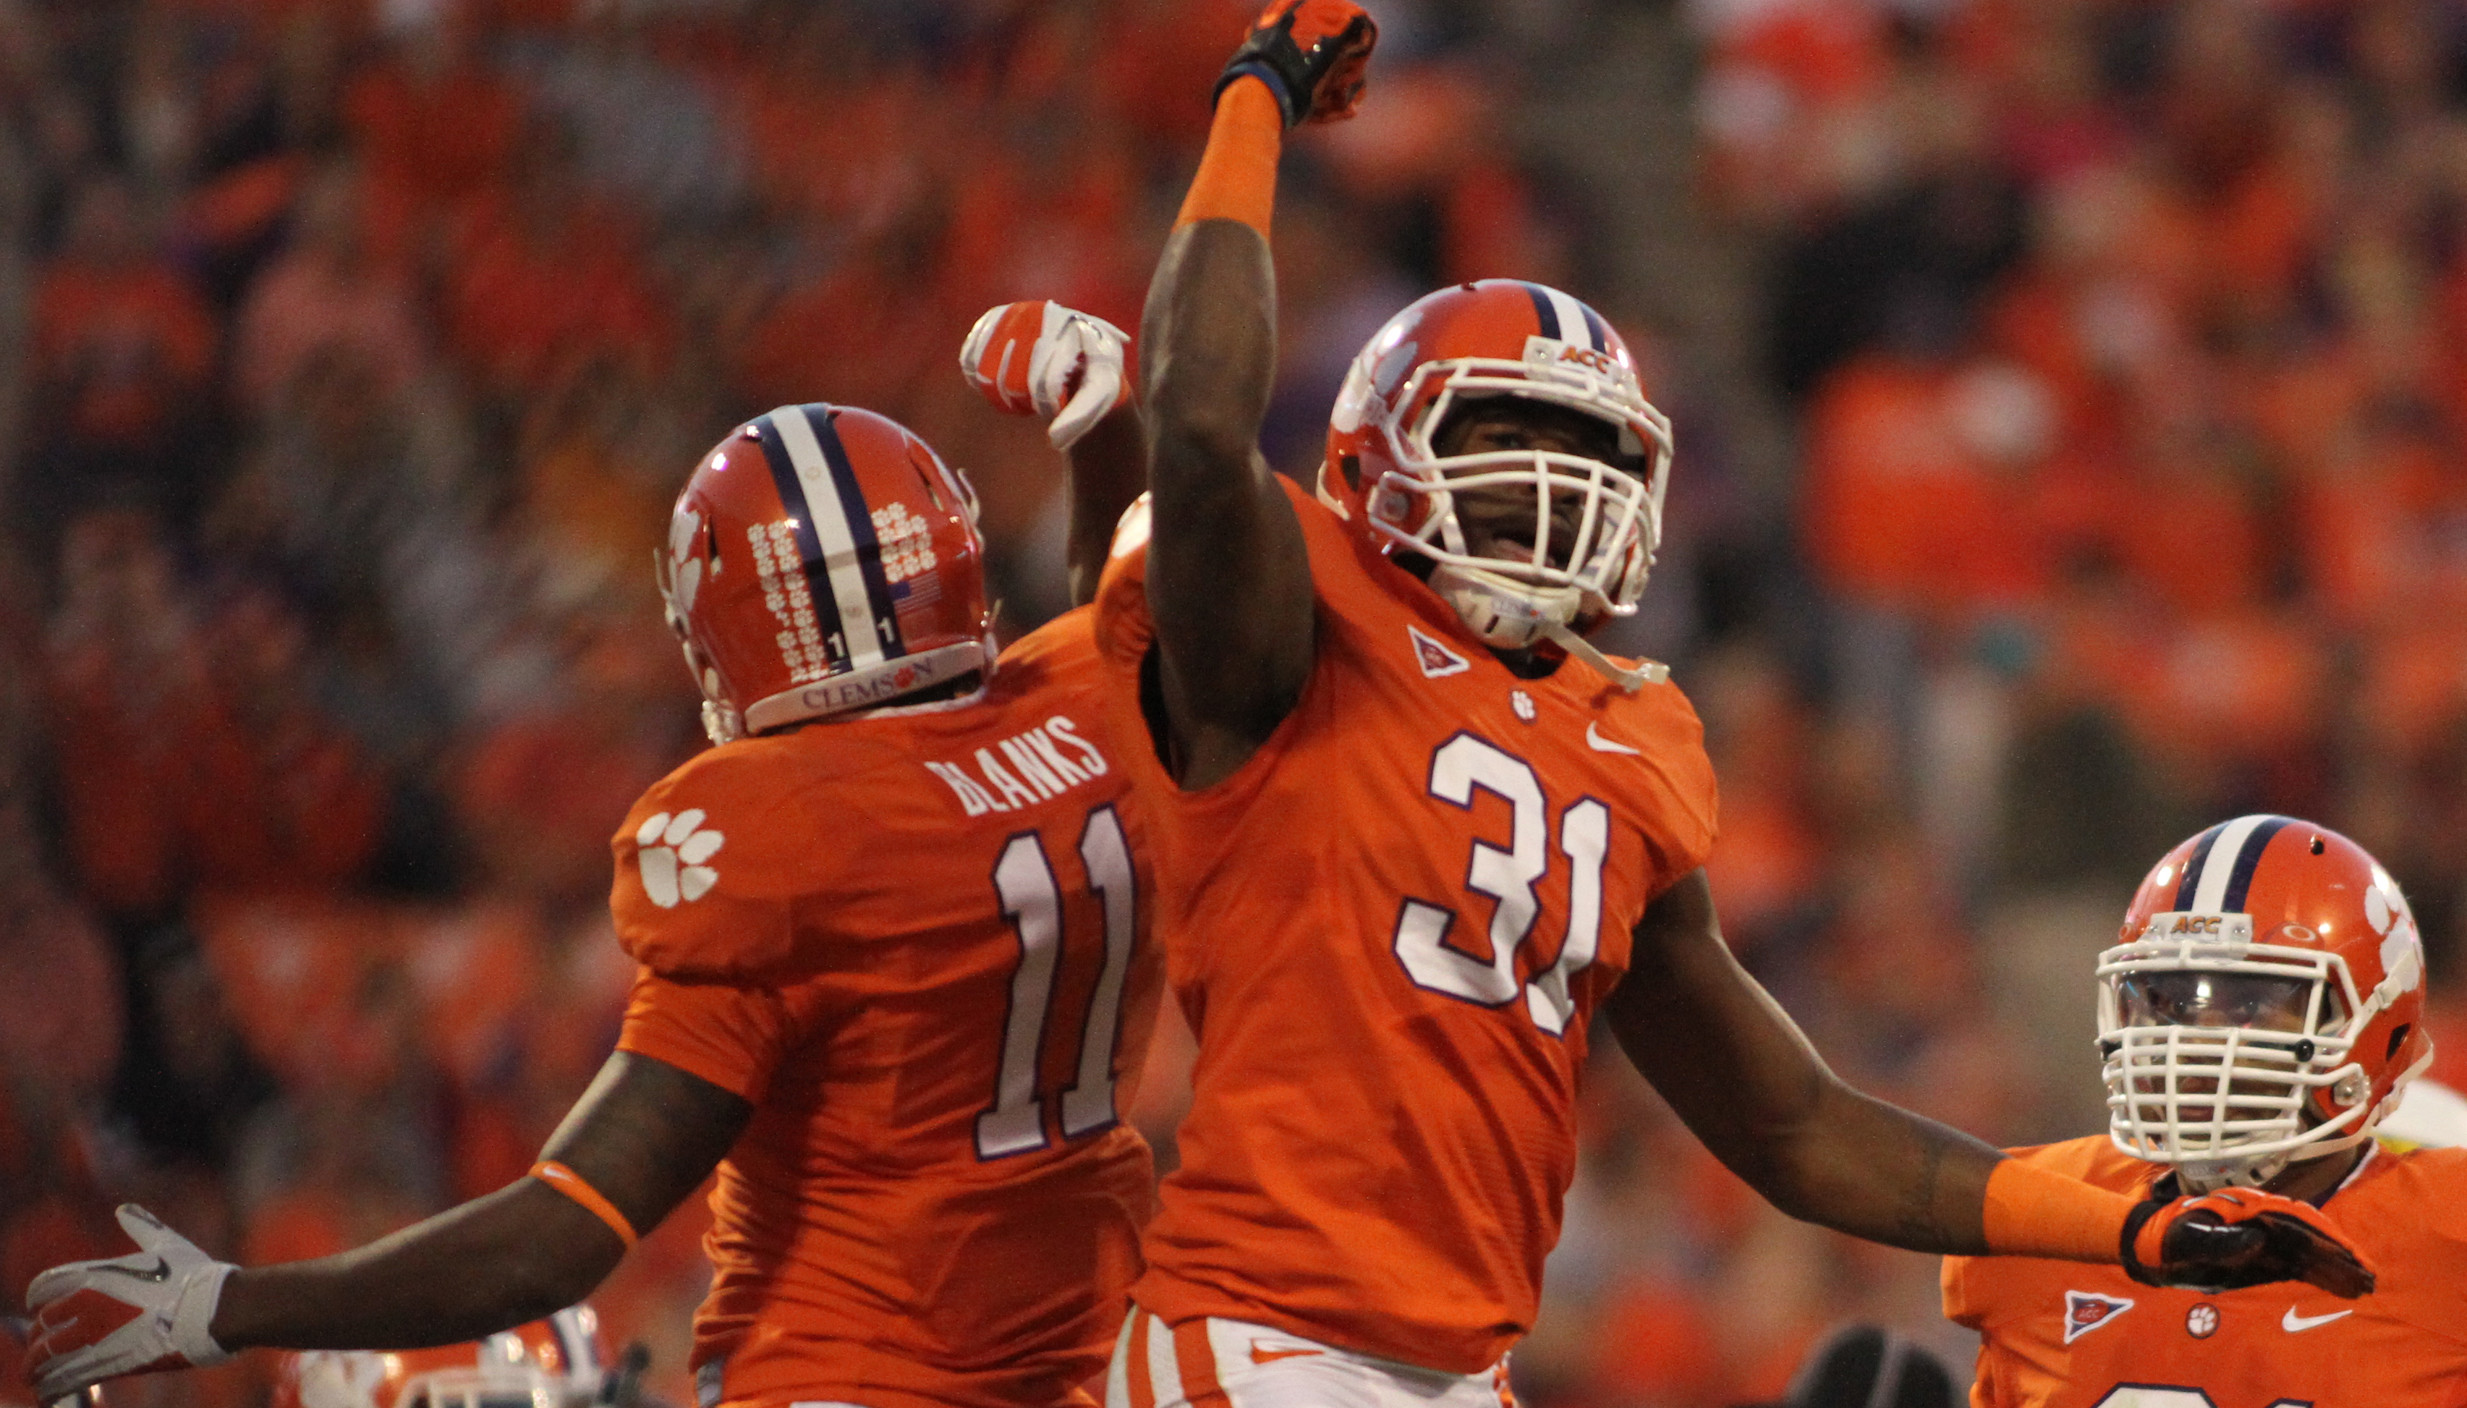 Clemson Football Video Report: Happy Holidays from the Tigers